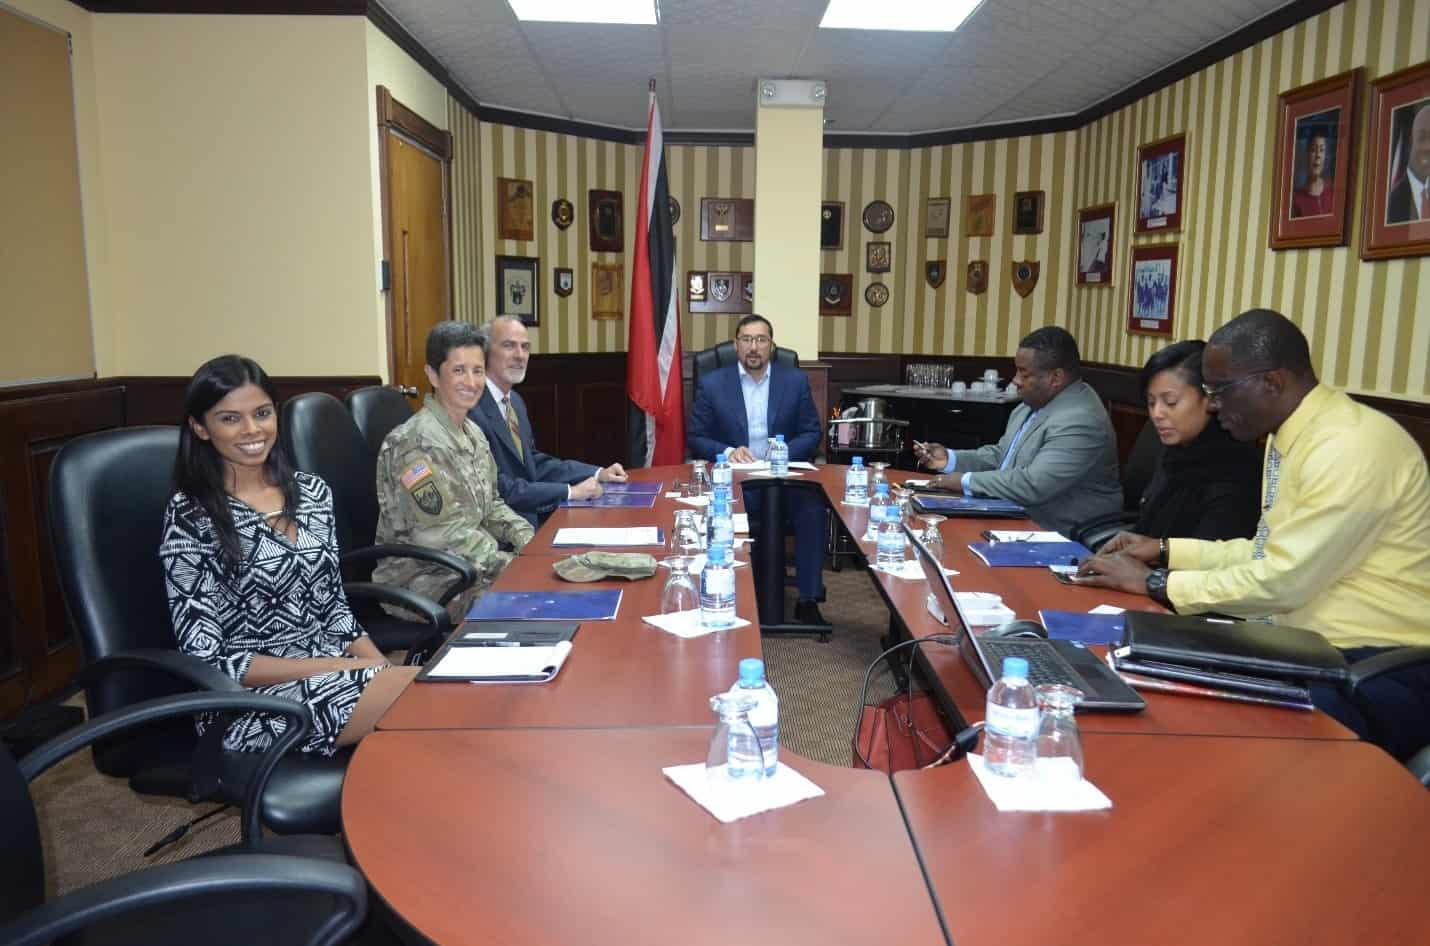 Young meets with US SOUTHCOM on Disaster Risk Reduction